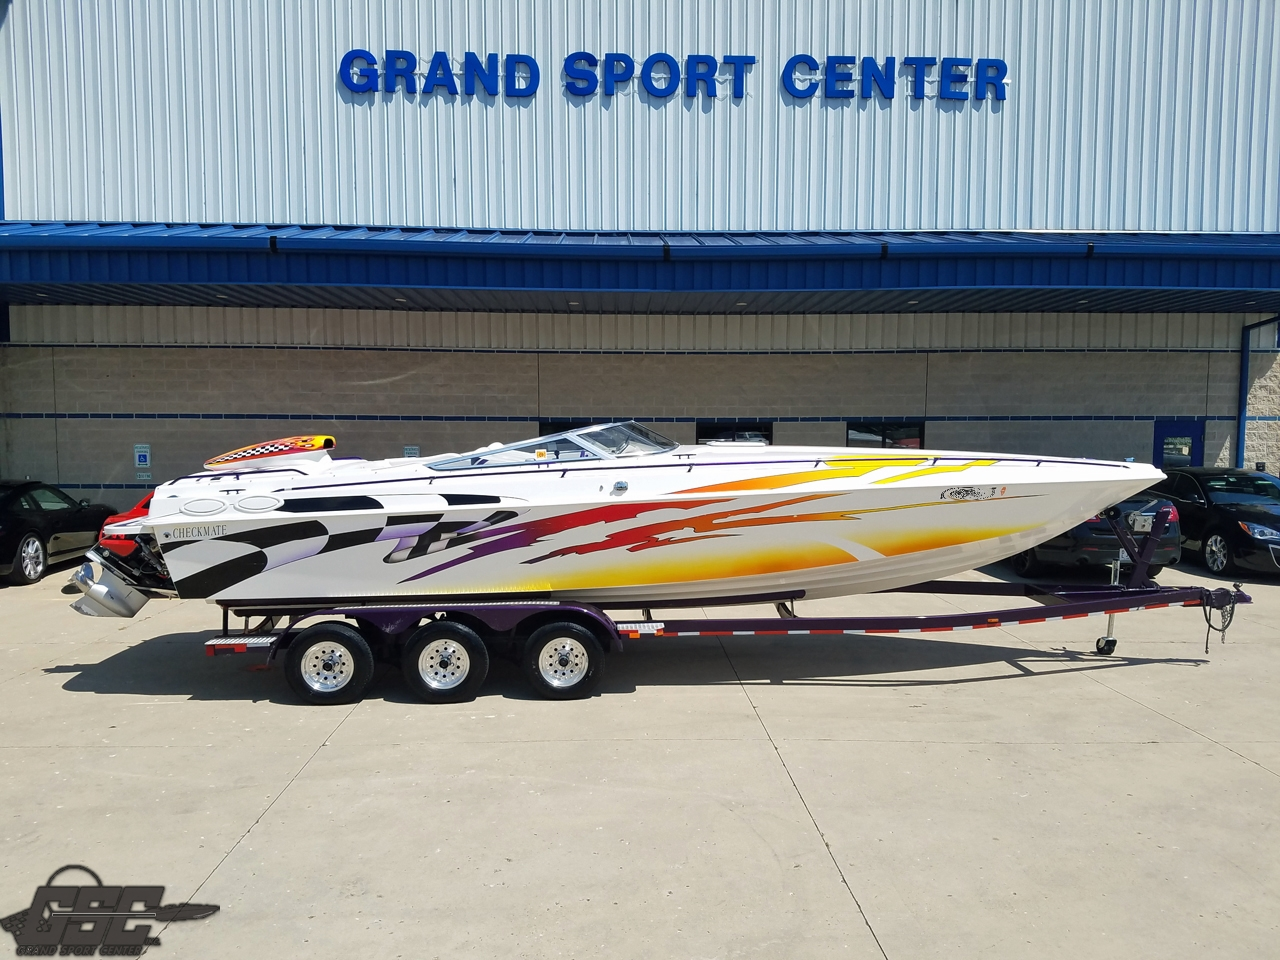 2000 Checkmate 283 Convincor - Sold in 1 week!